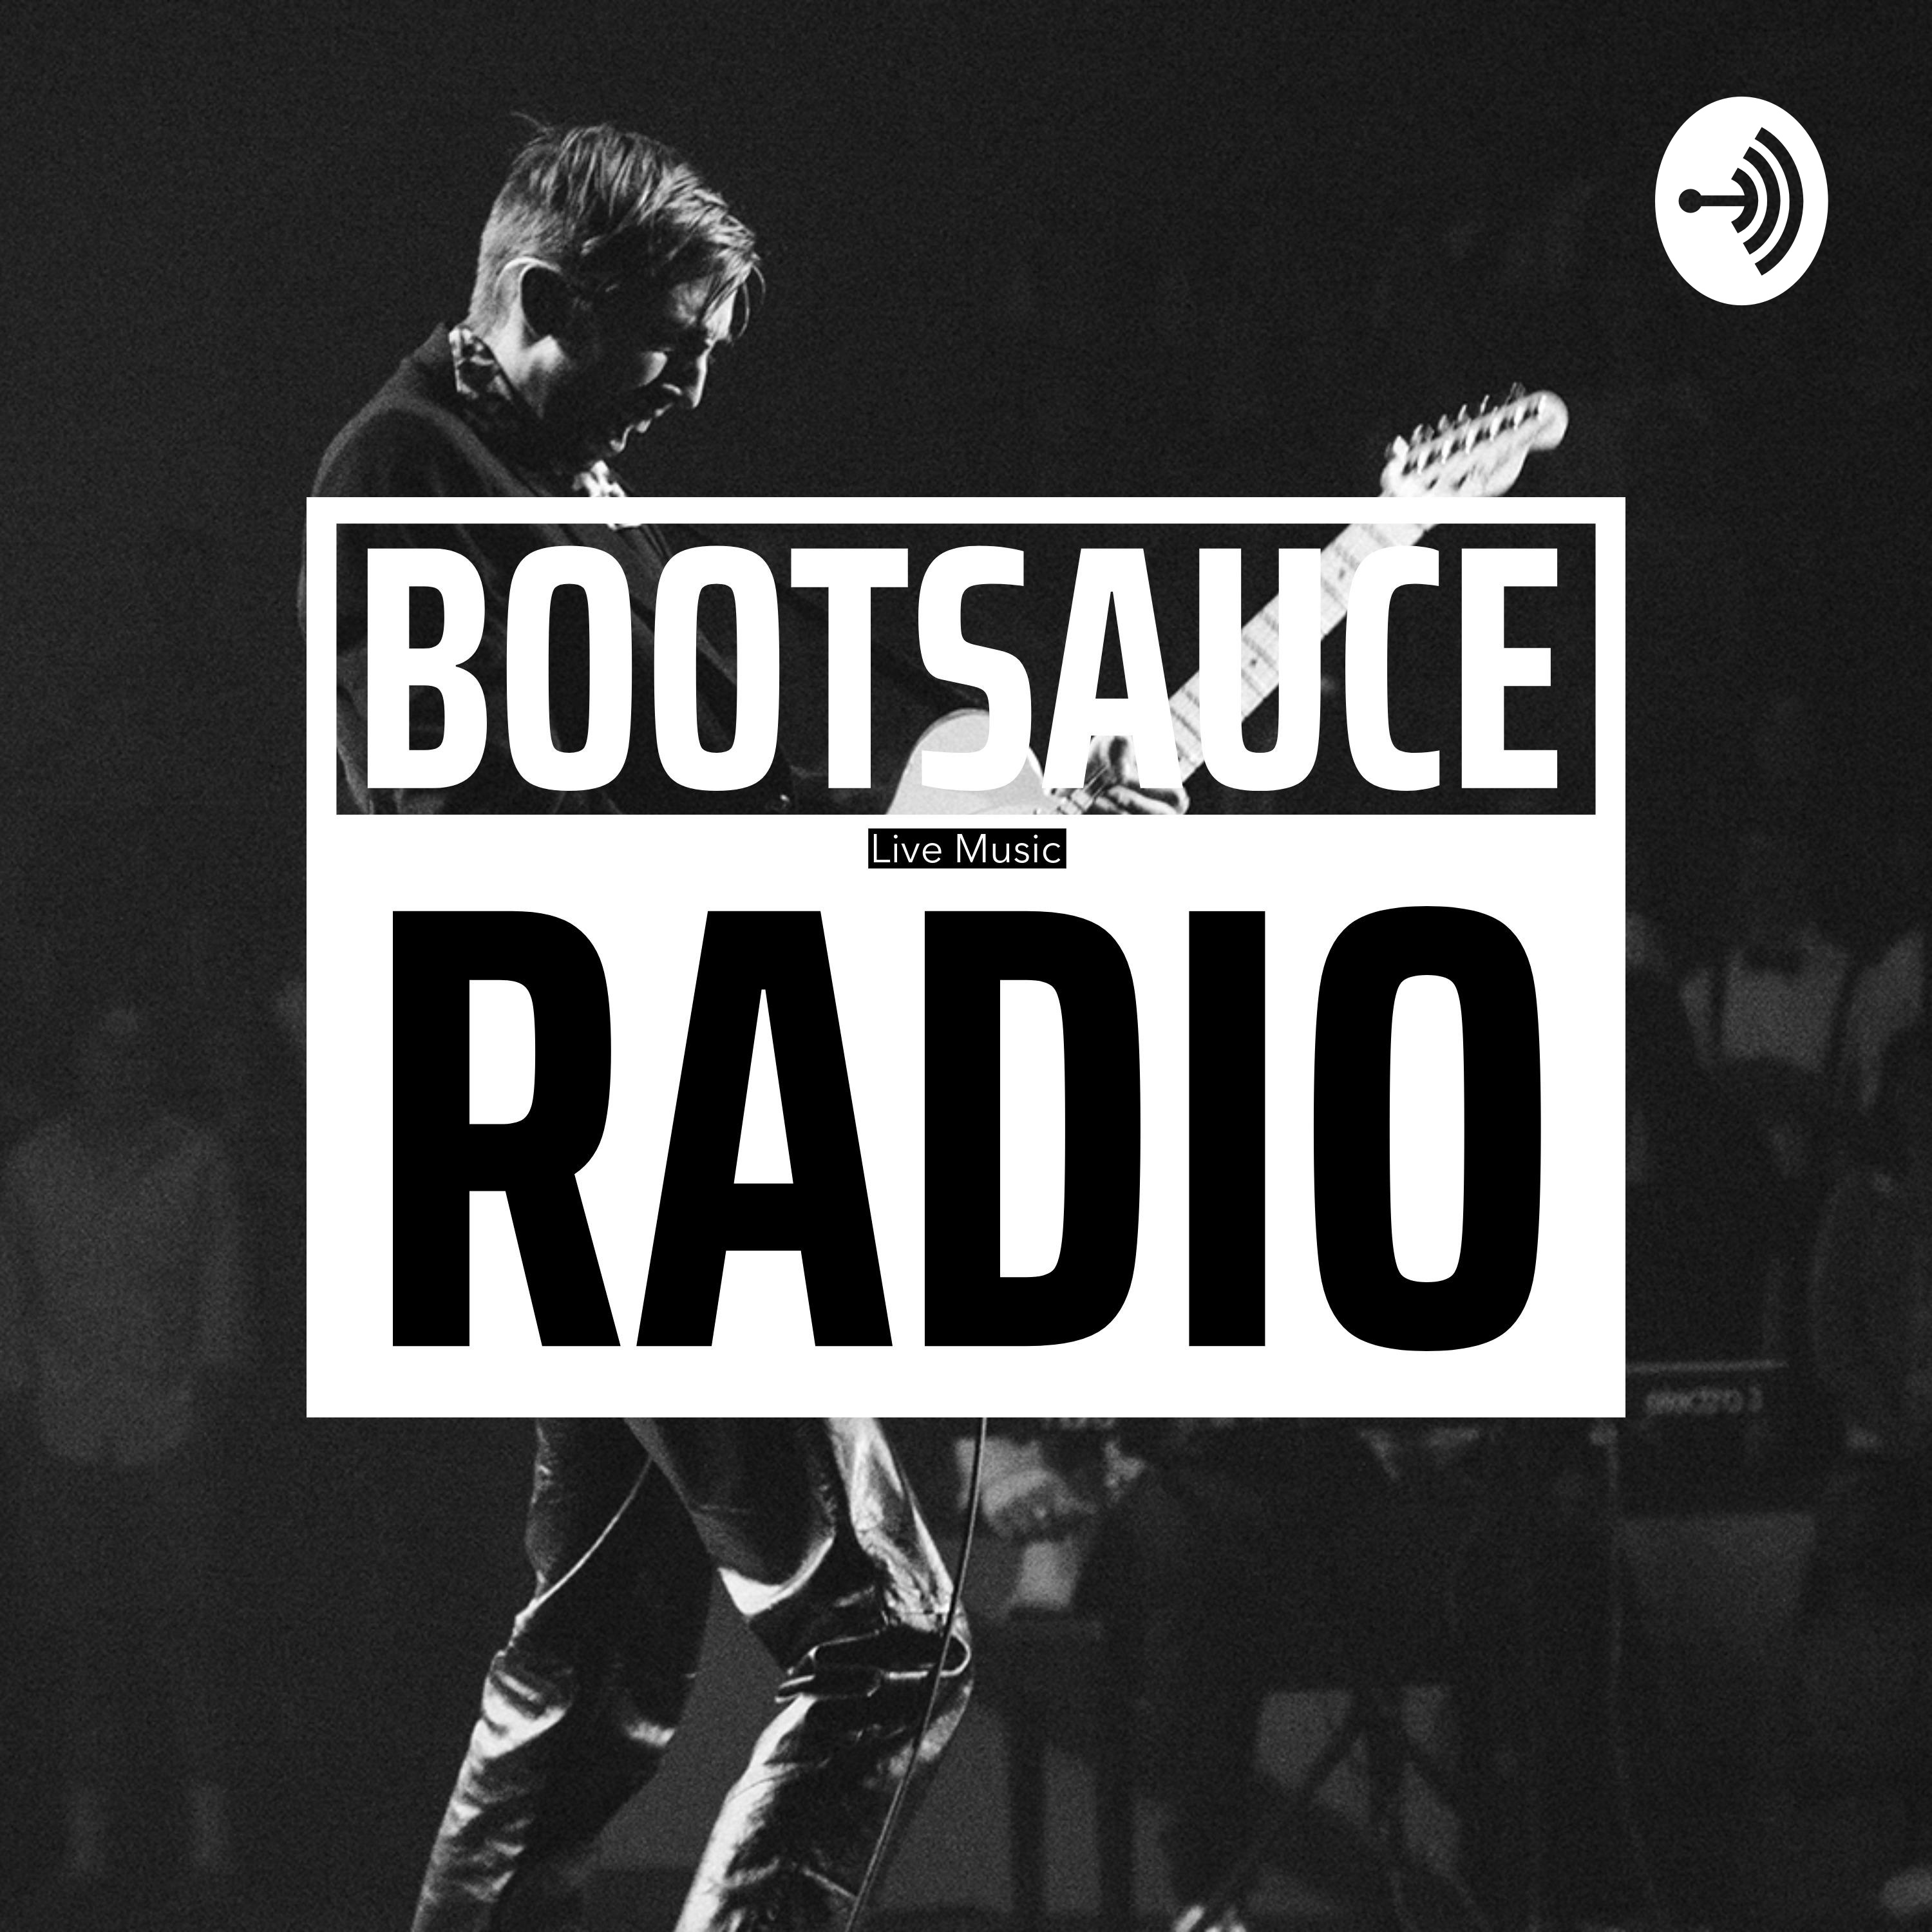 BOOT SAUCE RADIO Live Music Podcast